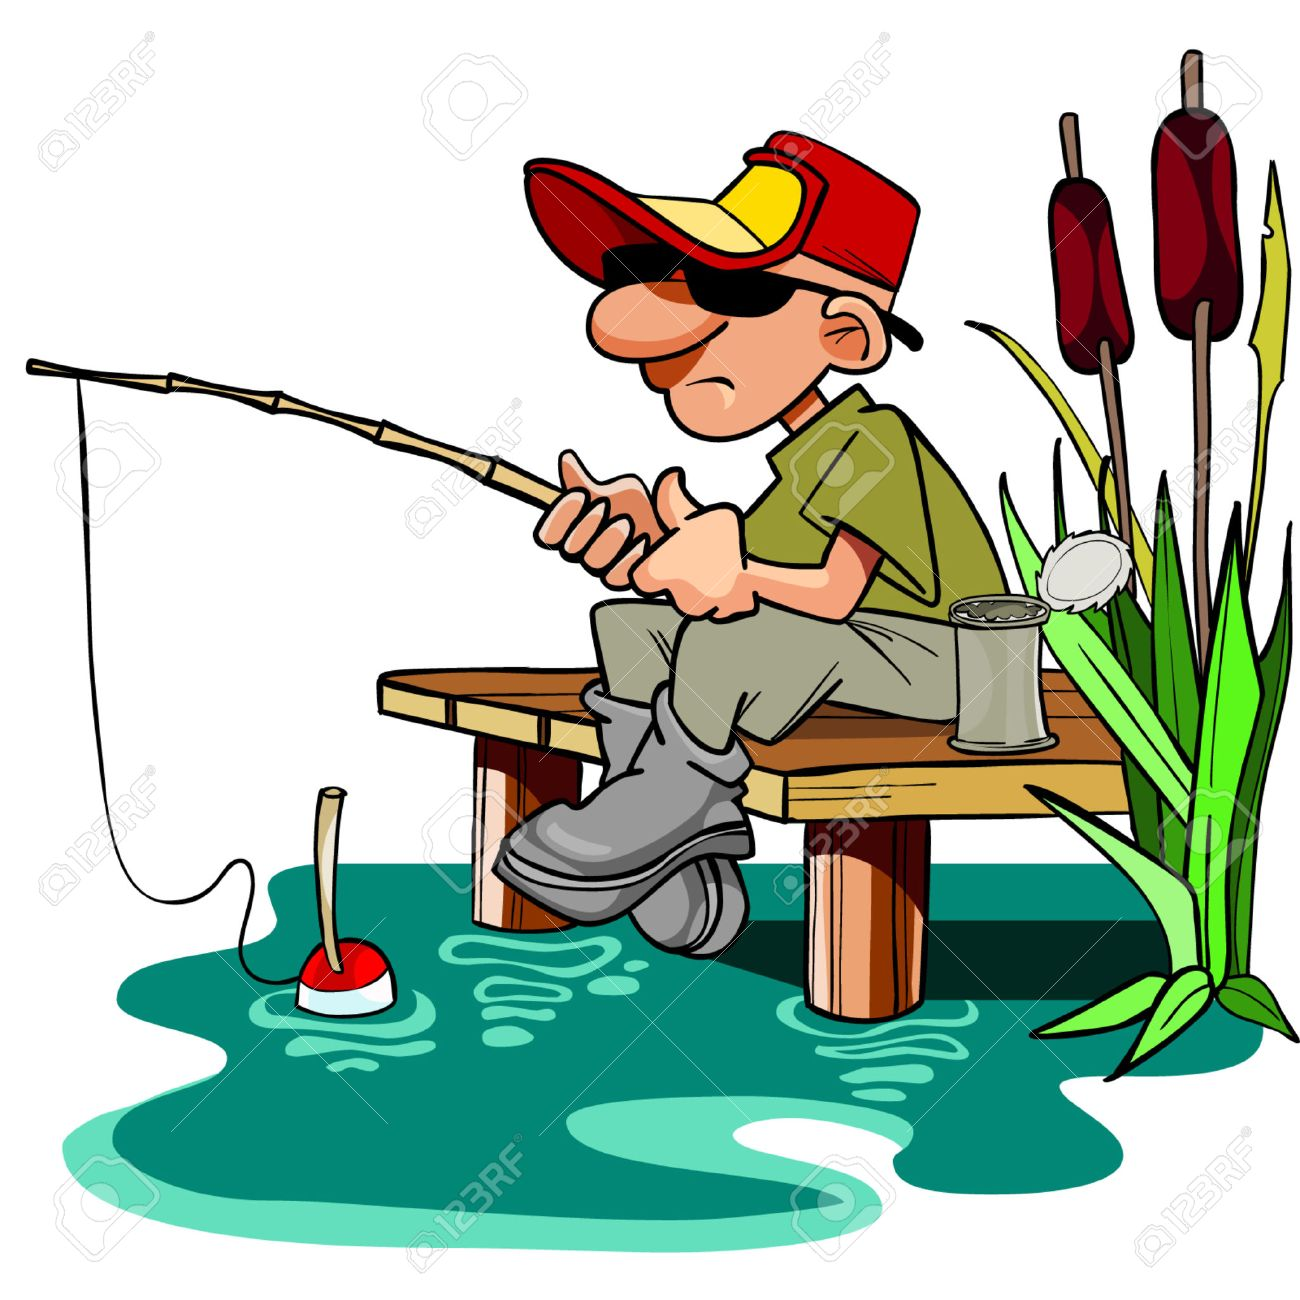 6 684 man fishing stock illustrations cliparts and royalty free man rh 123rf com clip art fishing boat clip art fishing images